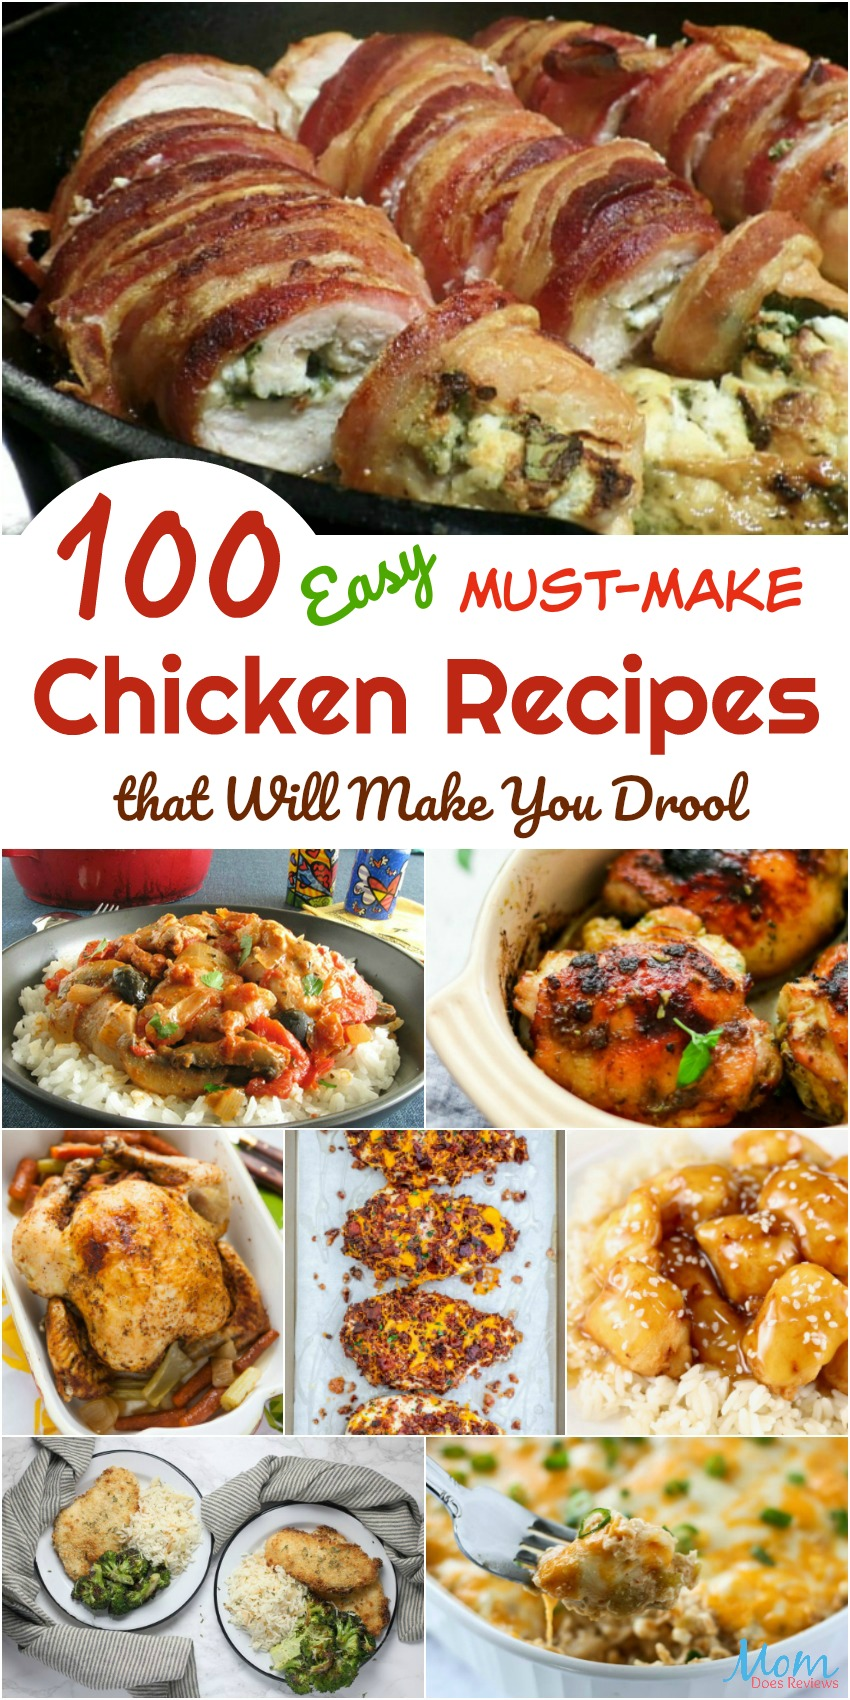 100 Easy Must-Make Chicken Recipes that Will Make You Drool #recipes #chicken #foodie